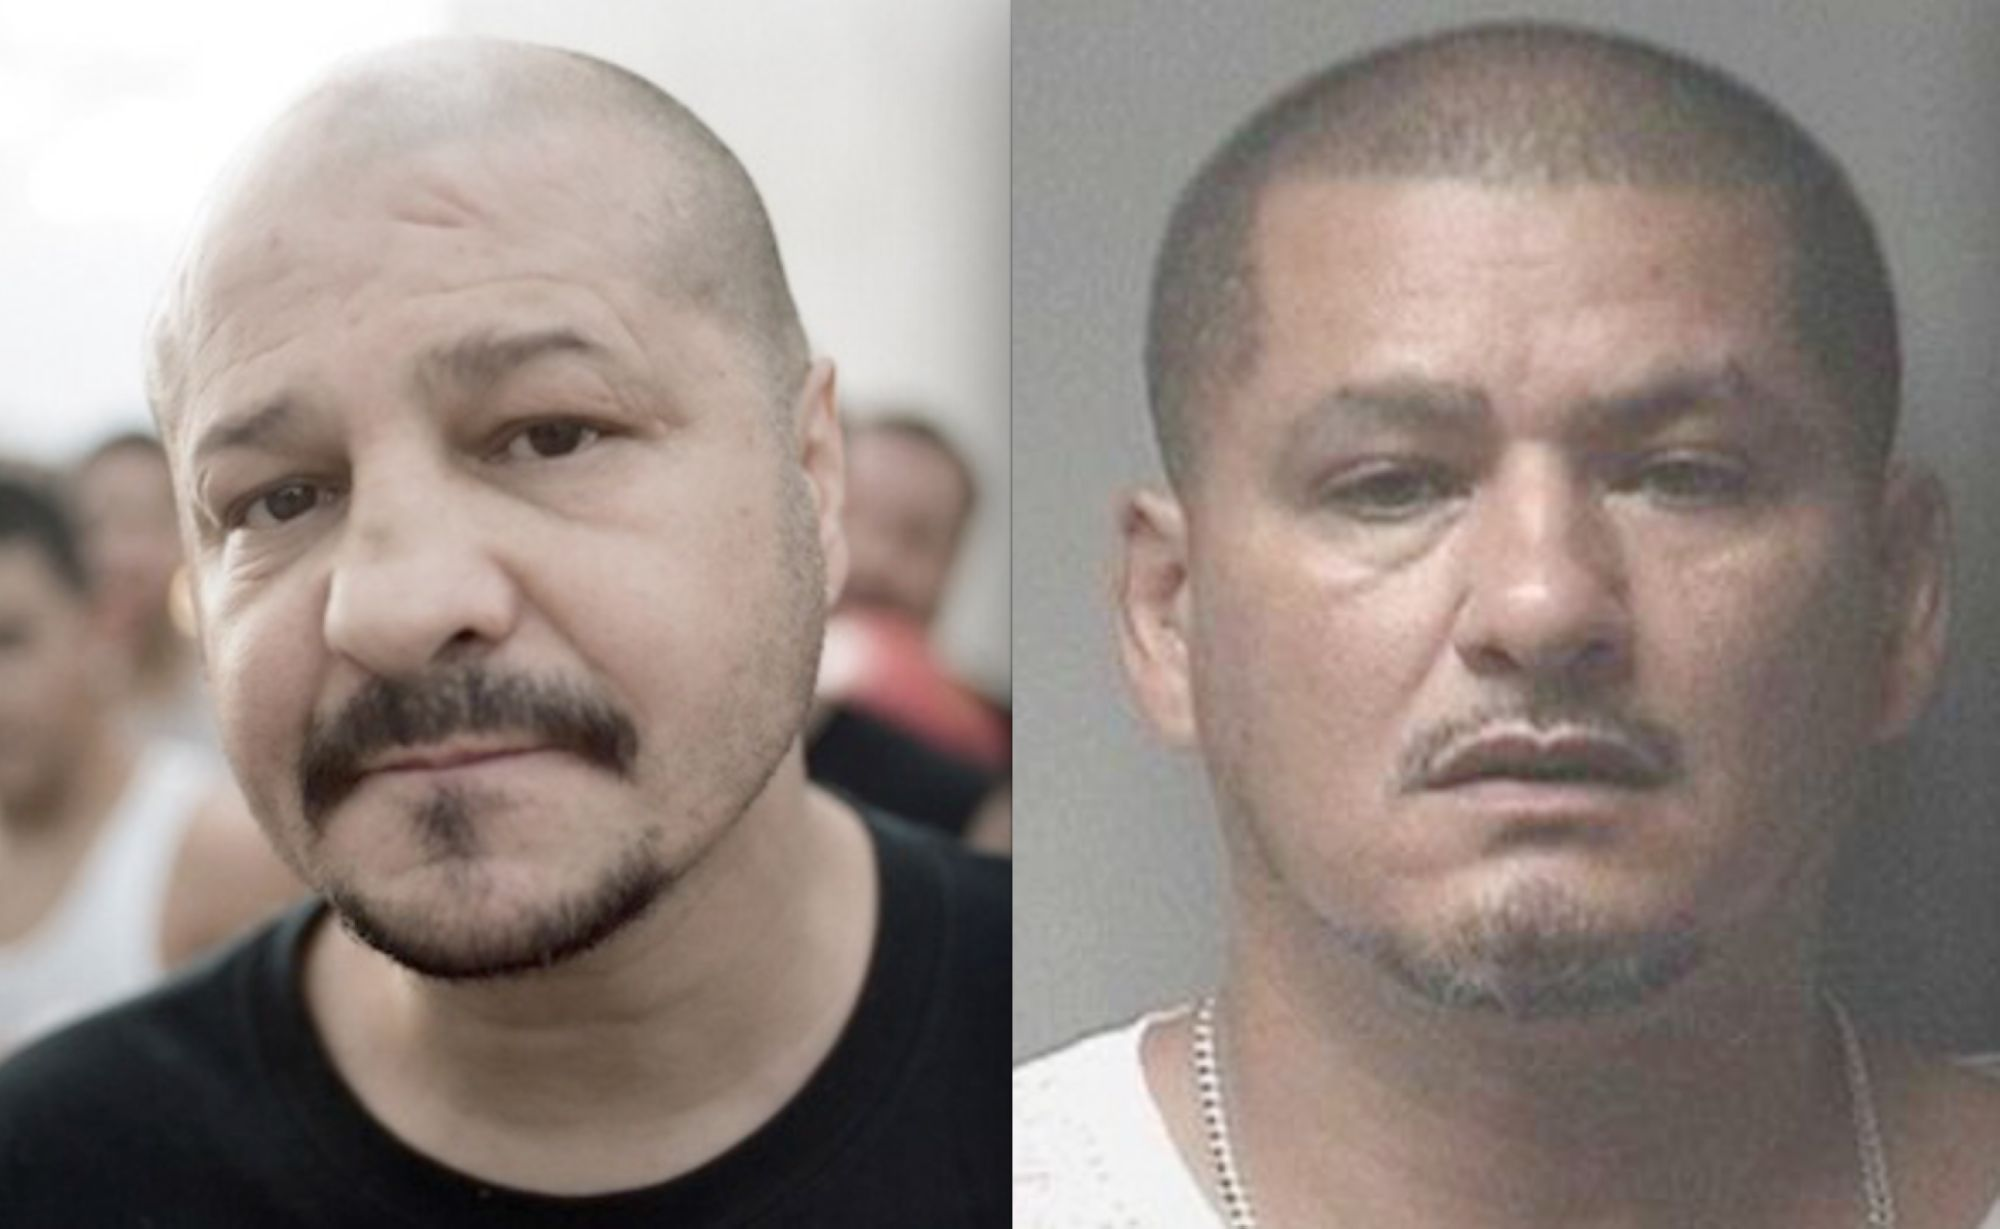 03-Johnny-Tapia-Vs-Intoxicated-Shooter.jpg